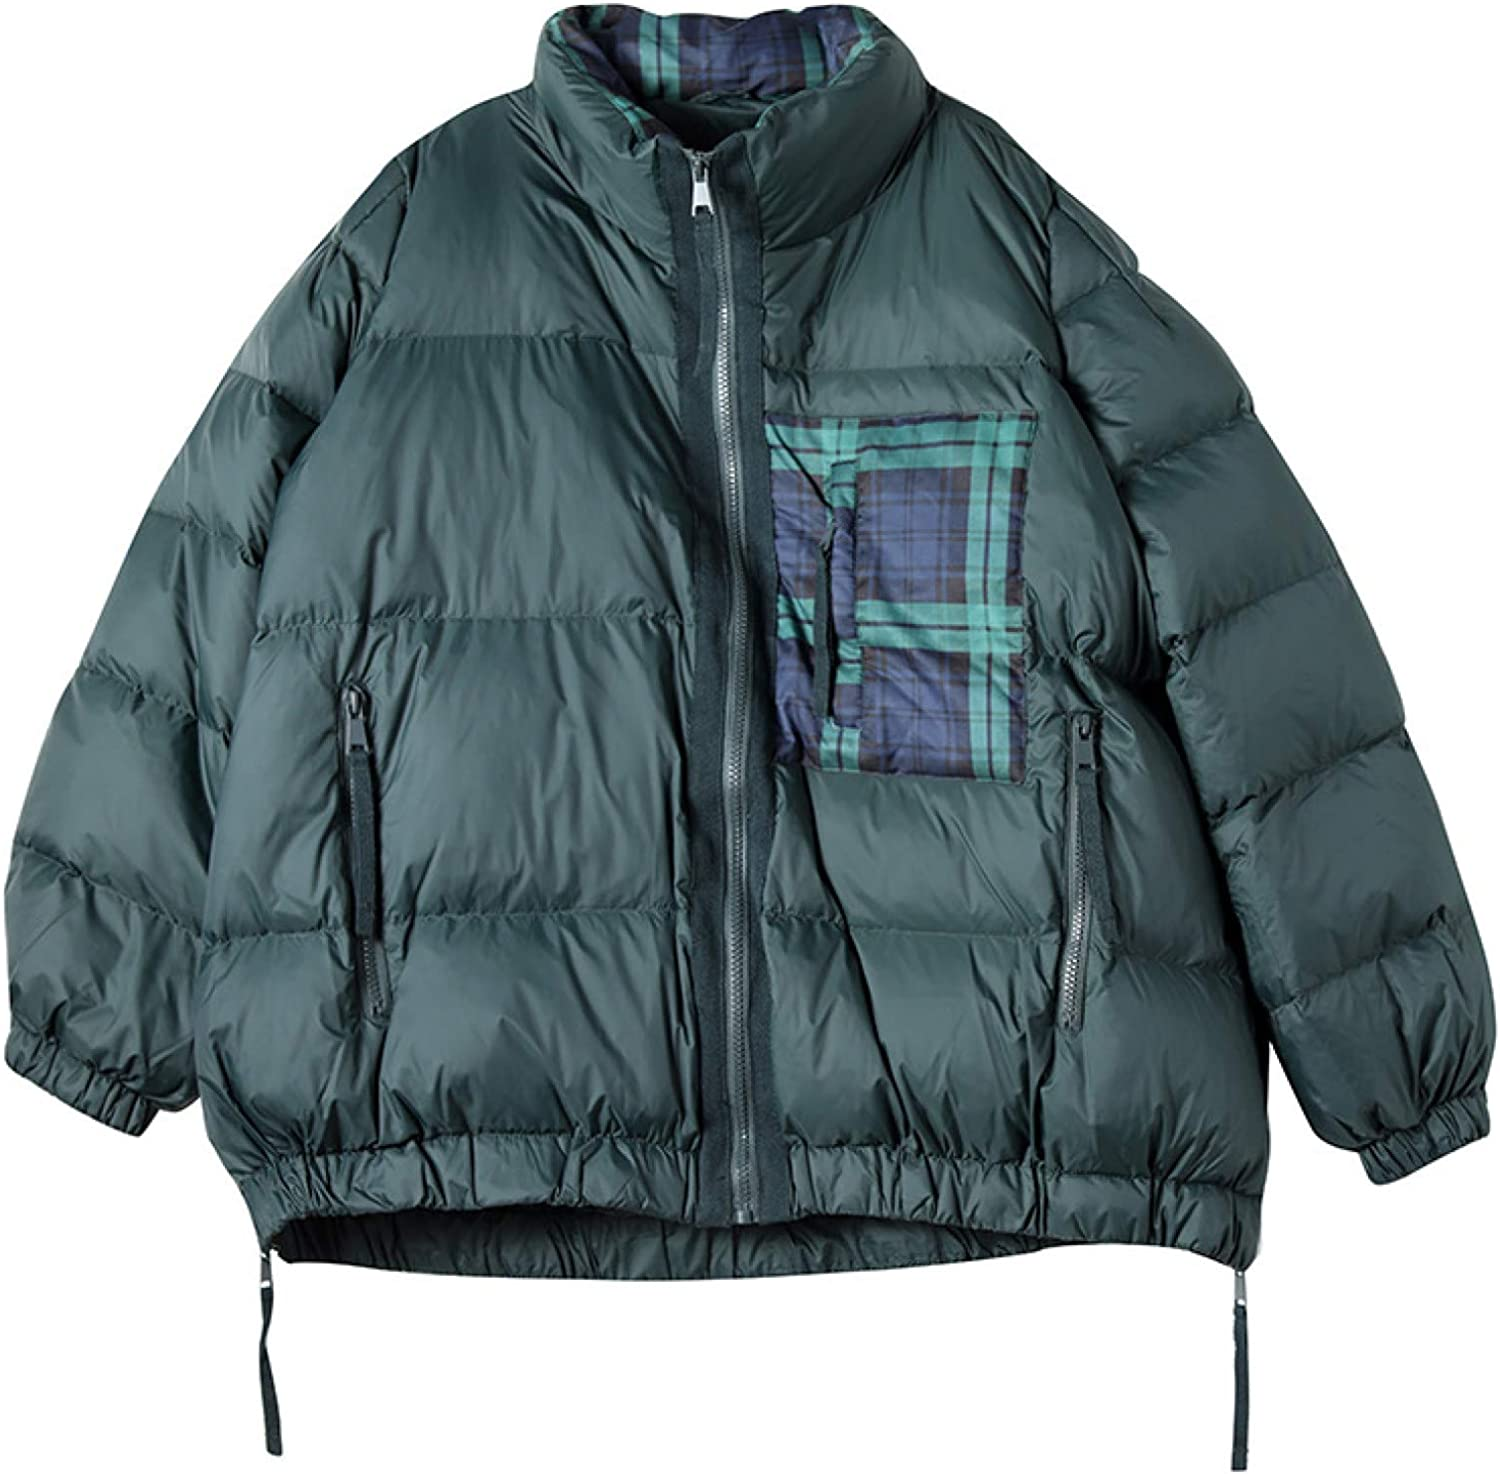 Women's Puffer Jacket , Stand Collar Women's Insulated Jacket with Pockets